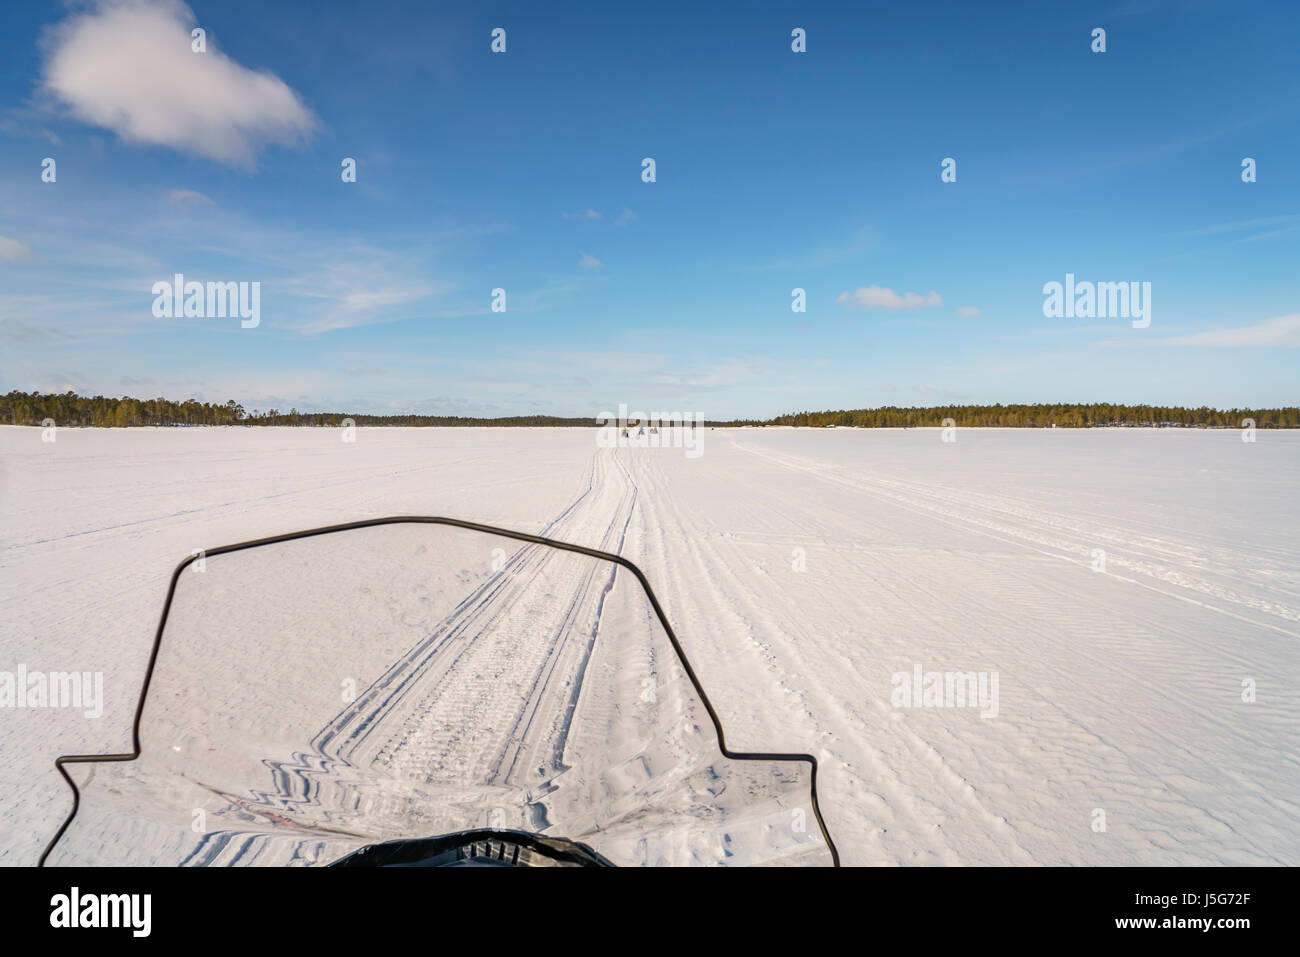 Snowmobile windshield, Lapland, Sweden - Stock Image